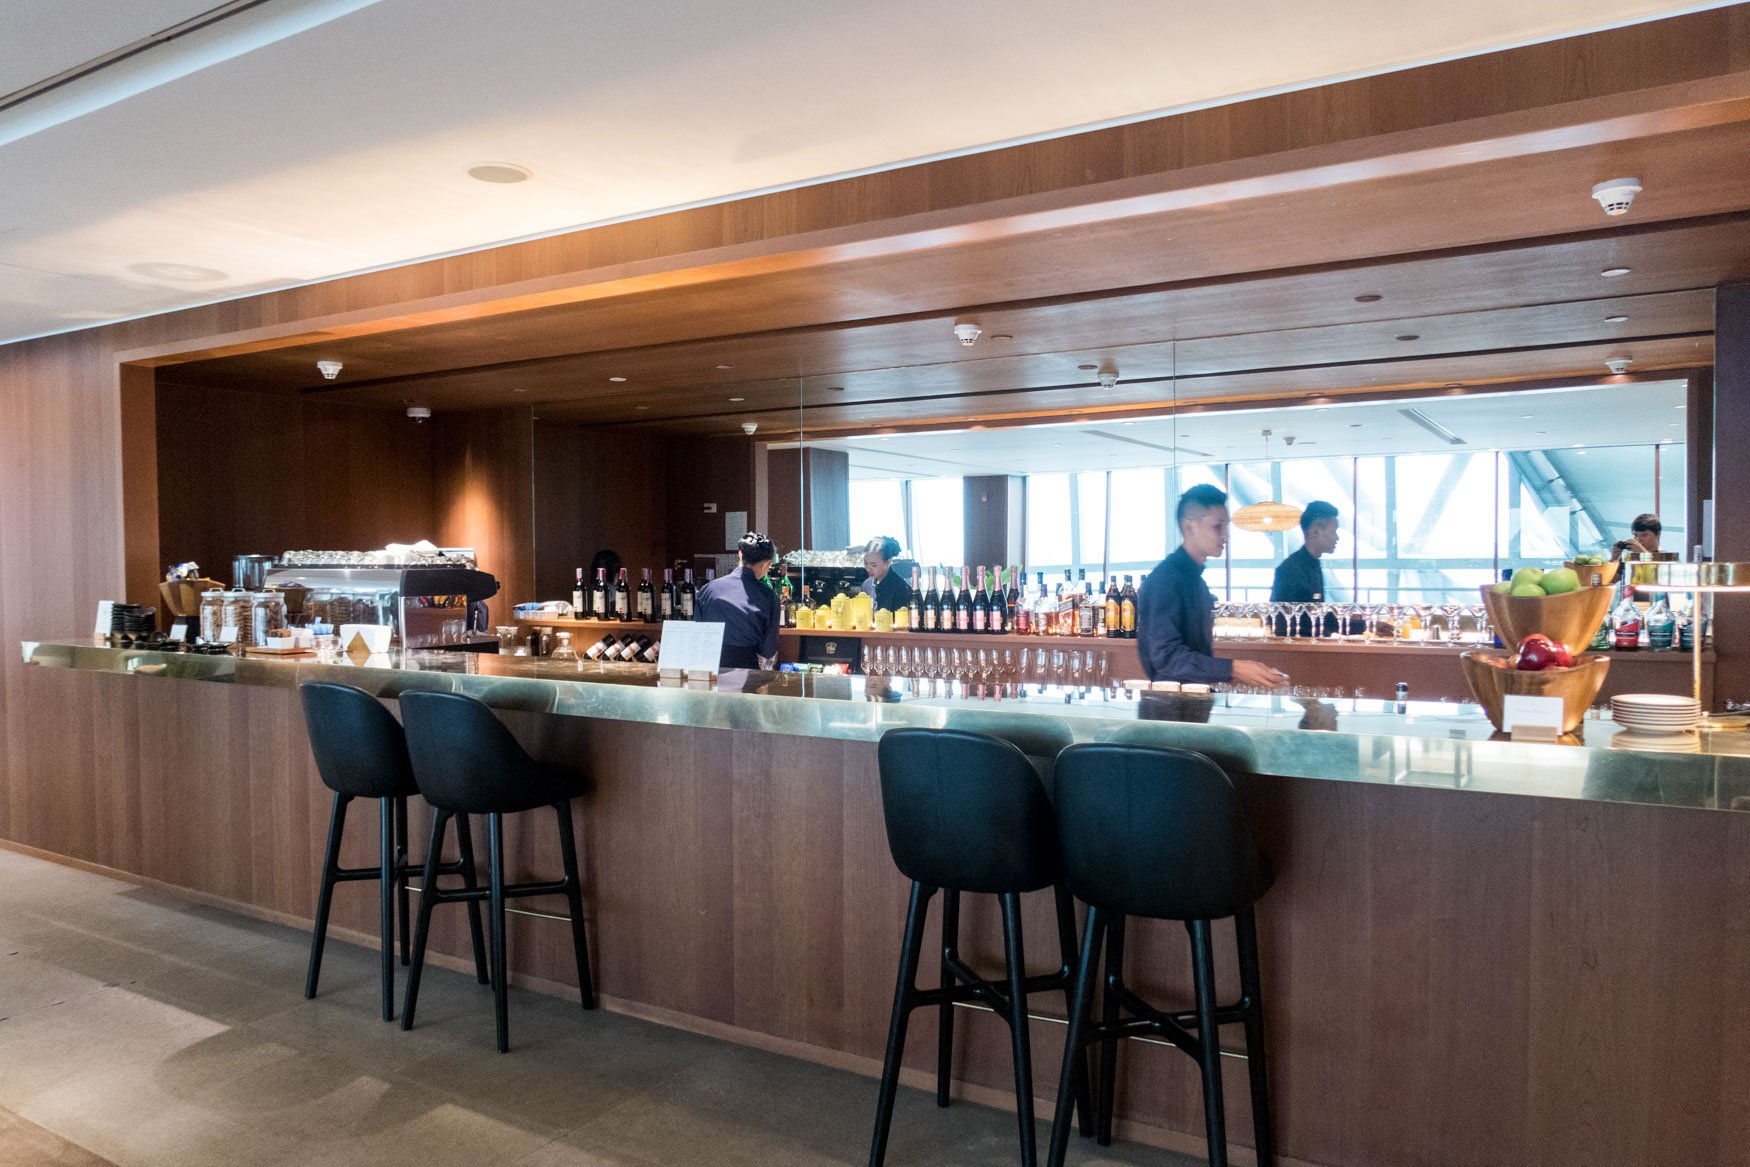 Cathay Pacific Lounge Bangkok The Bar